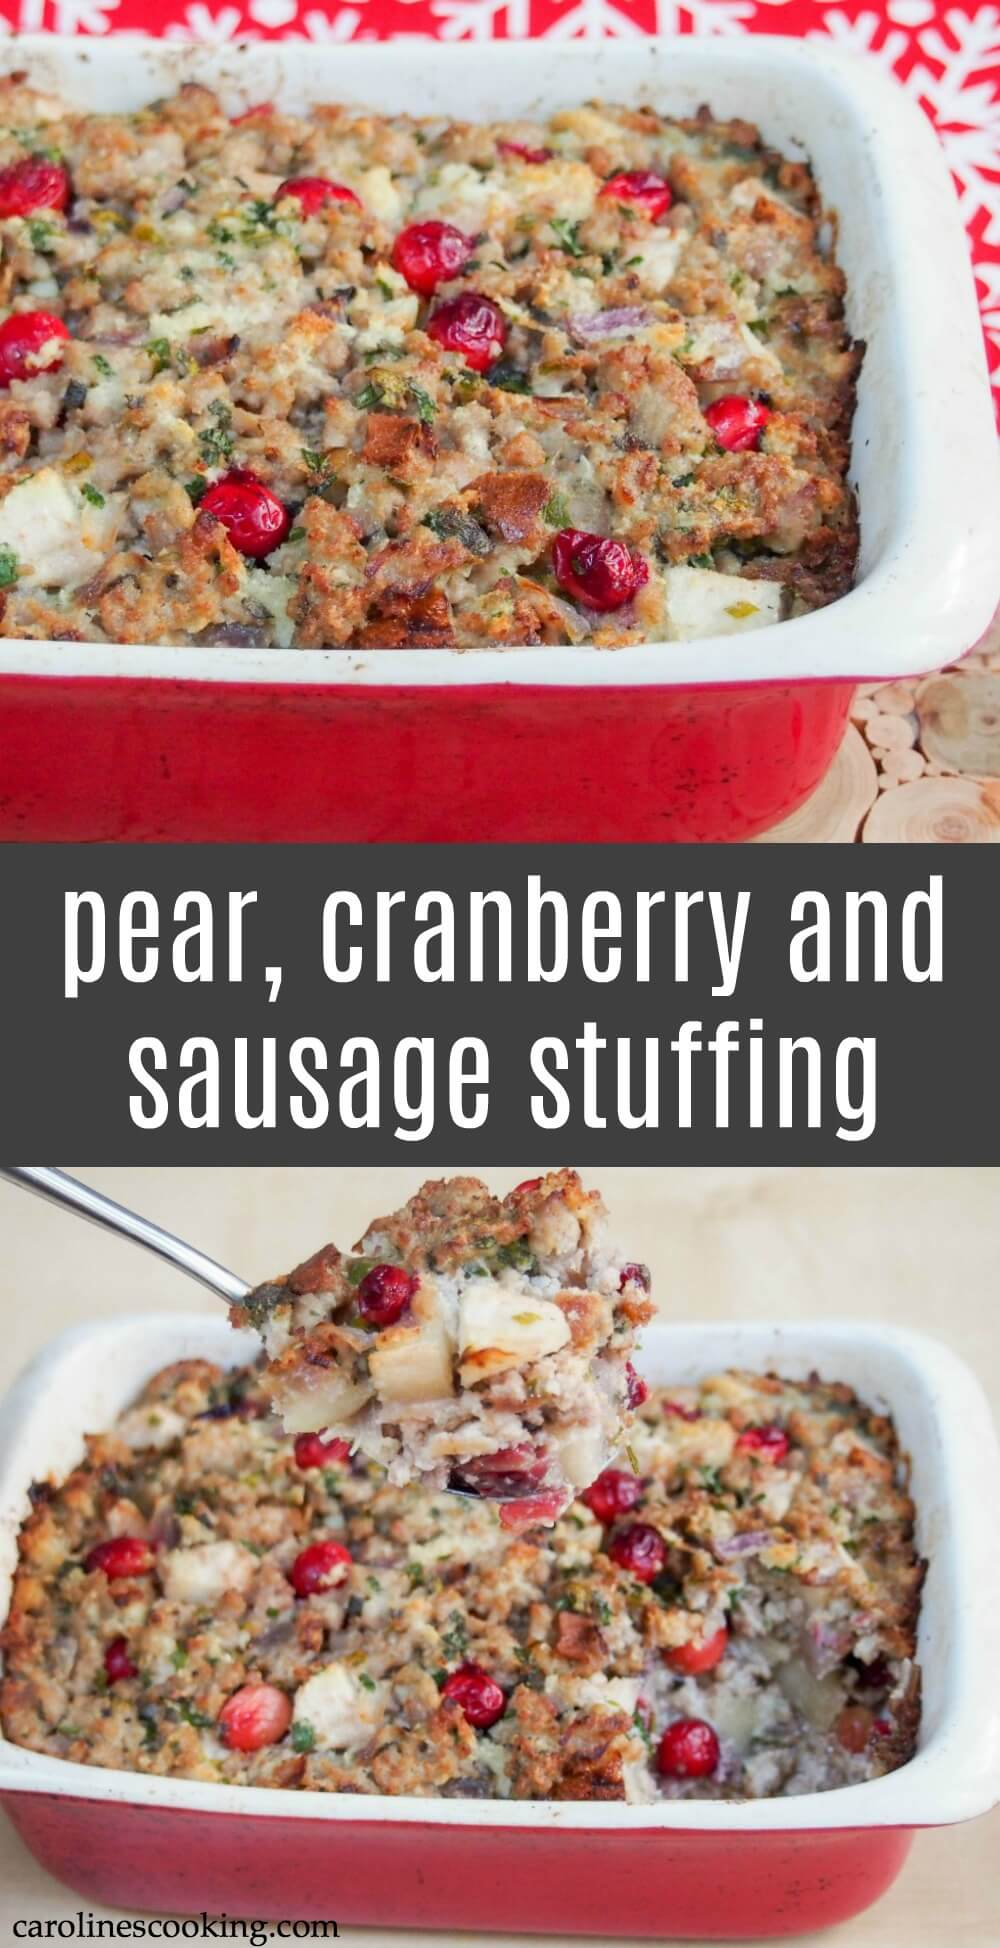 This pear, cranberry and sausage stuffing combines a great variety of seasonal flavors into a tasty side to a festive meal. Or make it the main event alongside some roasted vegetables.